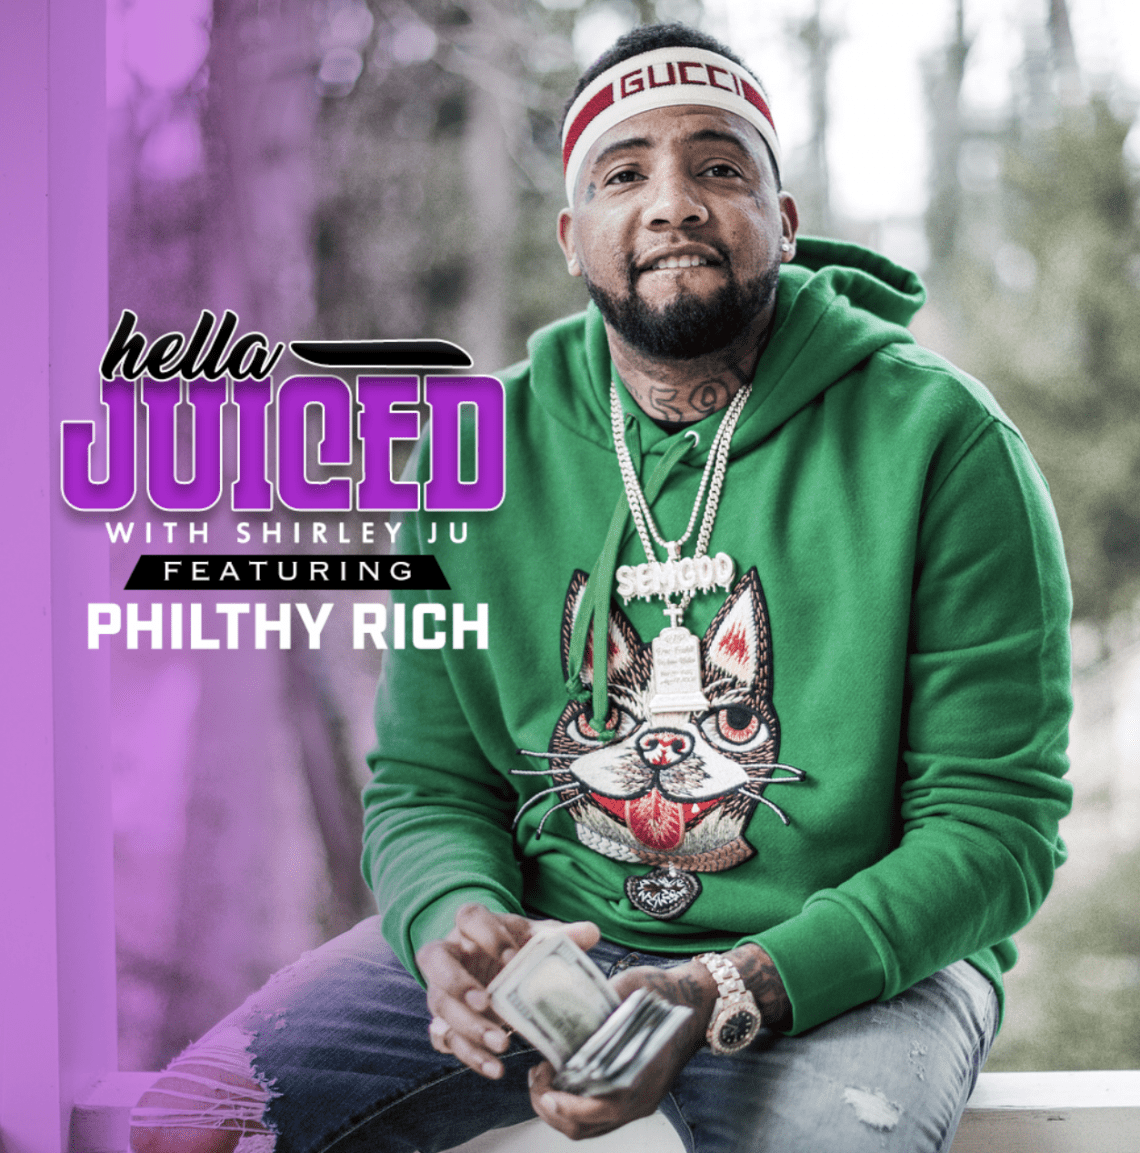 Hella Juiced: Philthy Rich